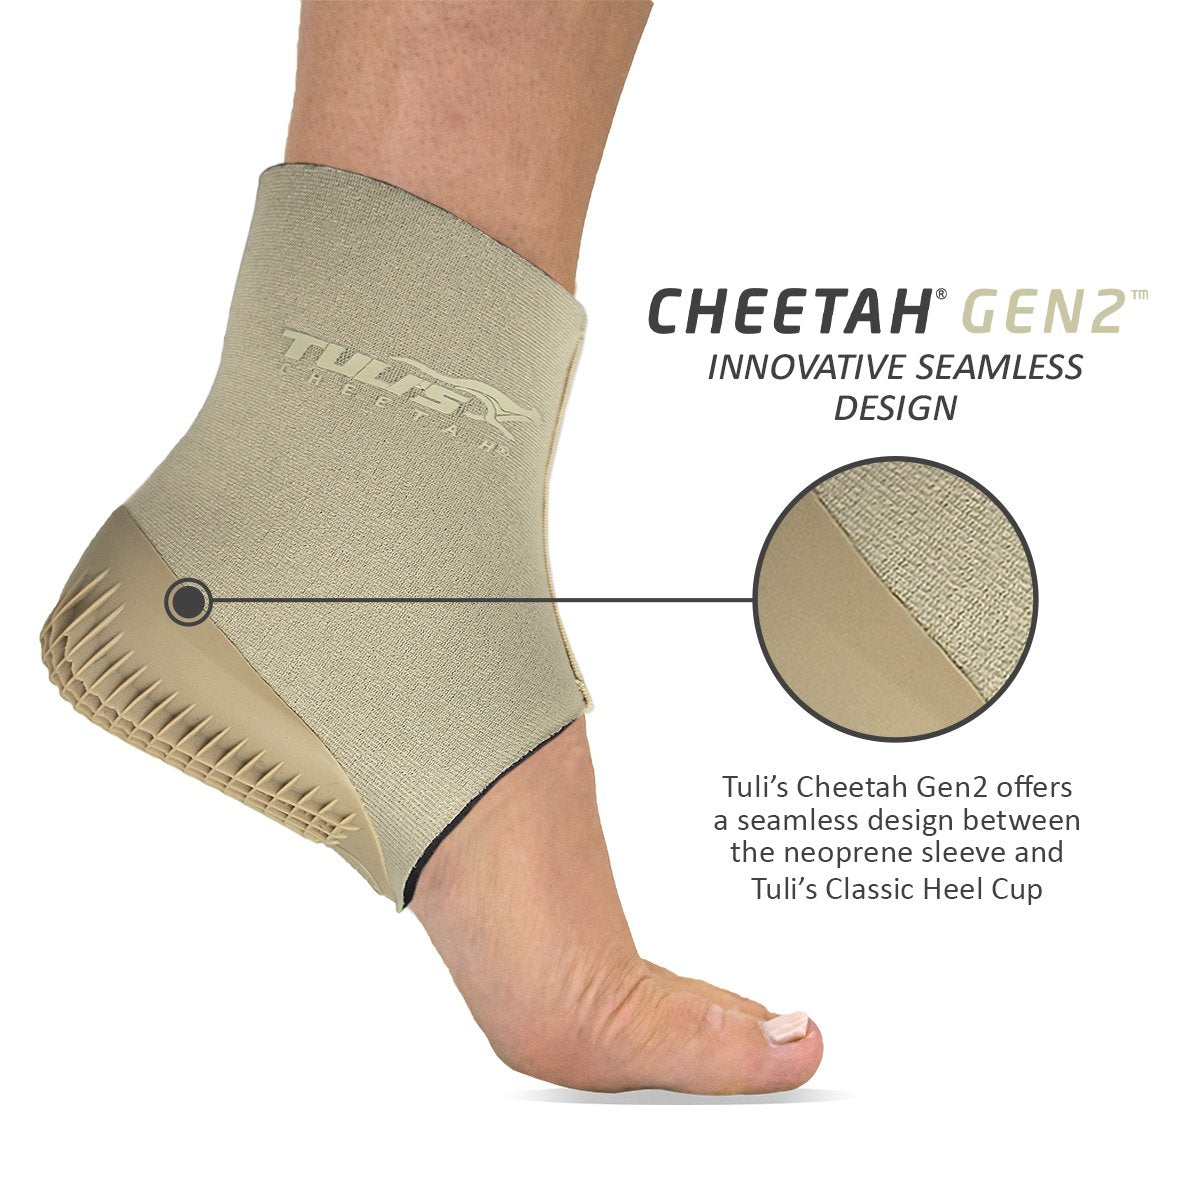 TULI'S CHEETAH GEN2 HEEL CUP WITH COMPRESSION SLEEVE YOUTH SIZES